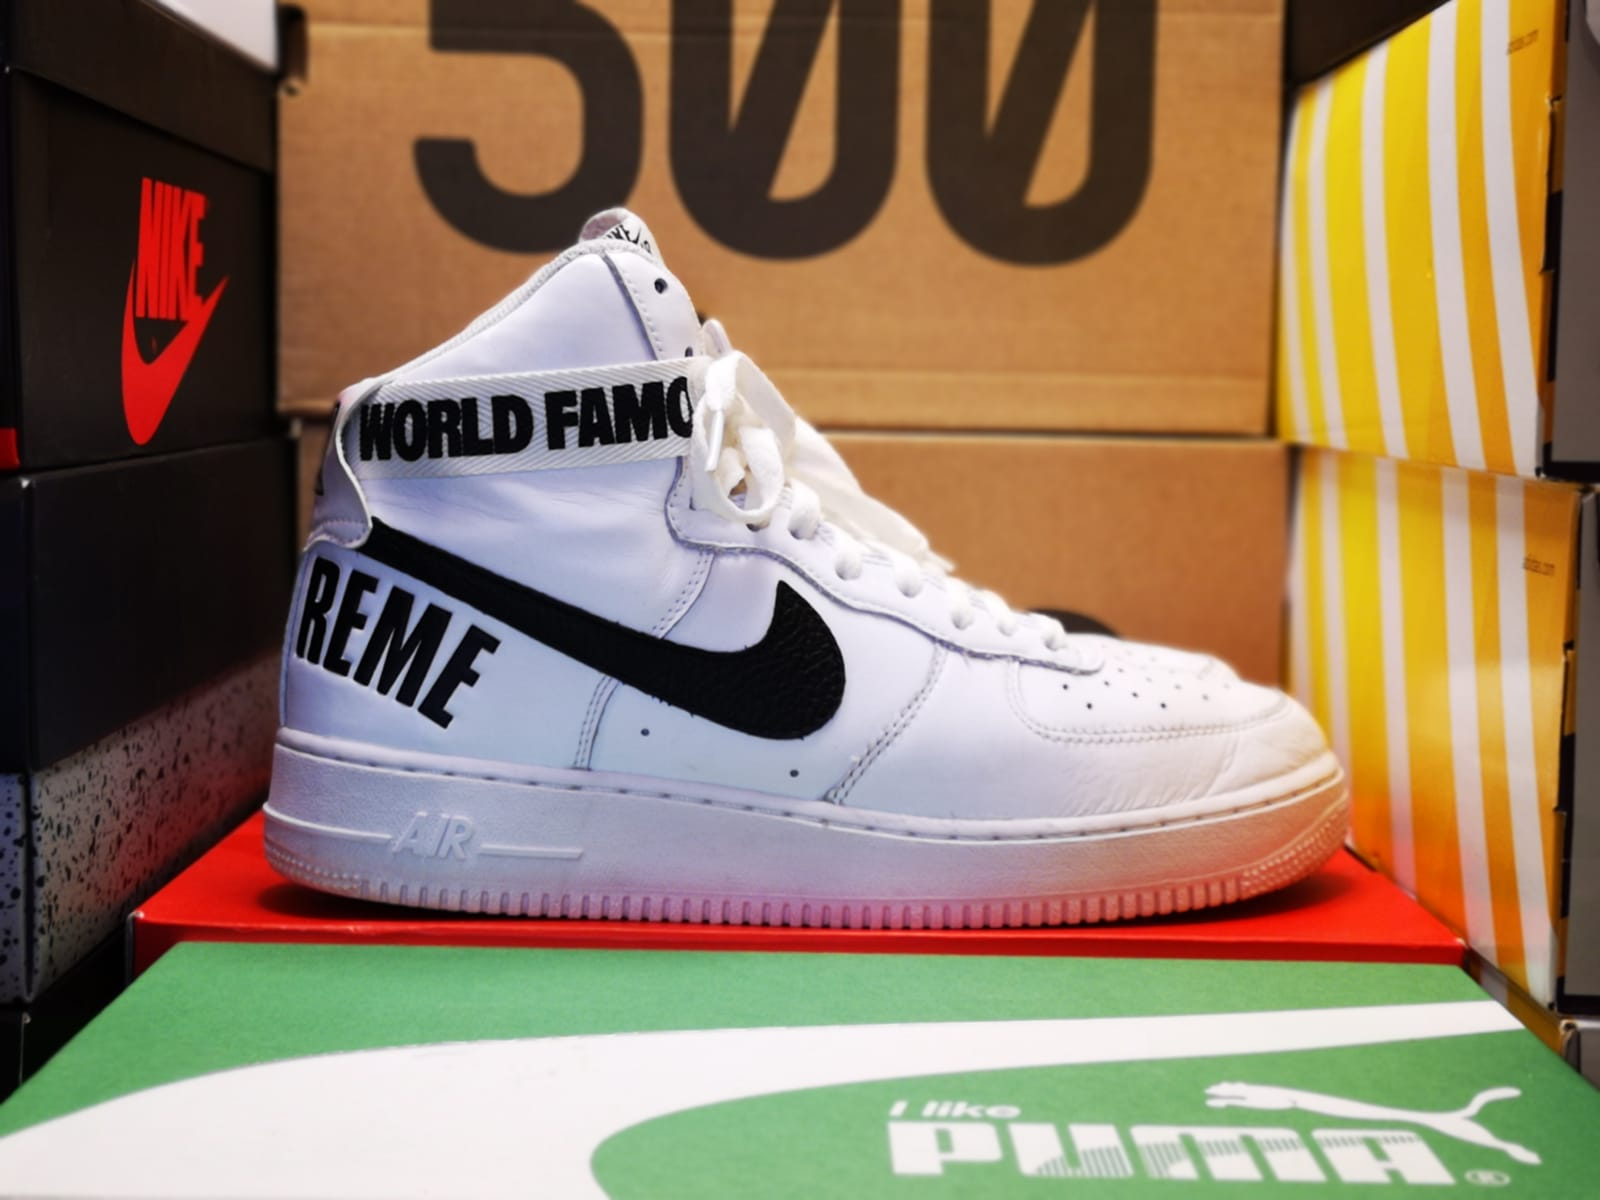 timeless design fa74f 2adef Supreme AF1 World Famous – Castle Kickz